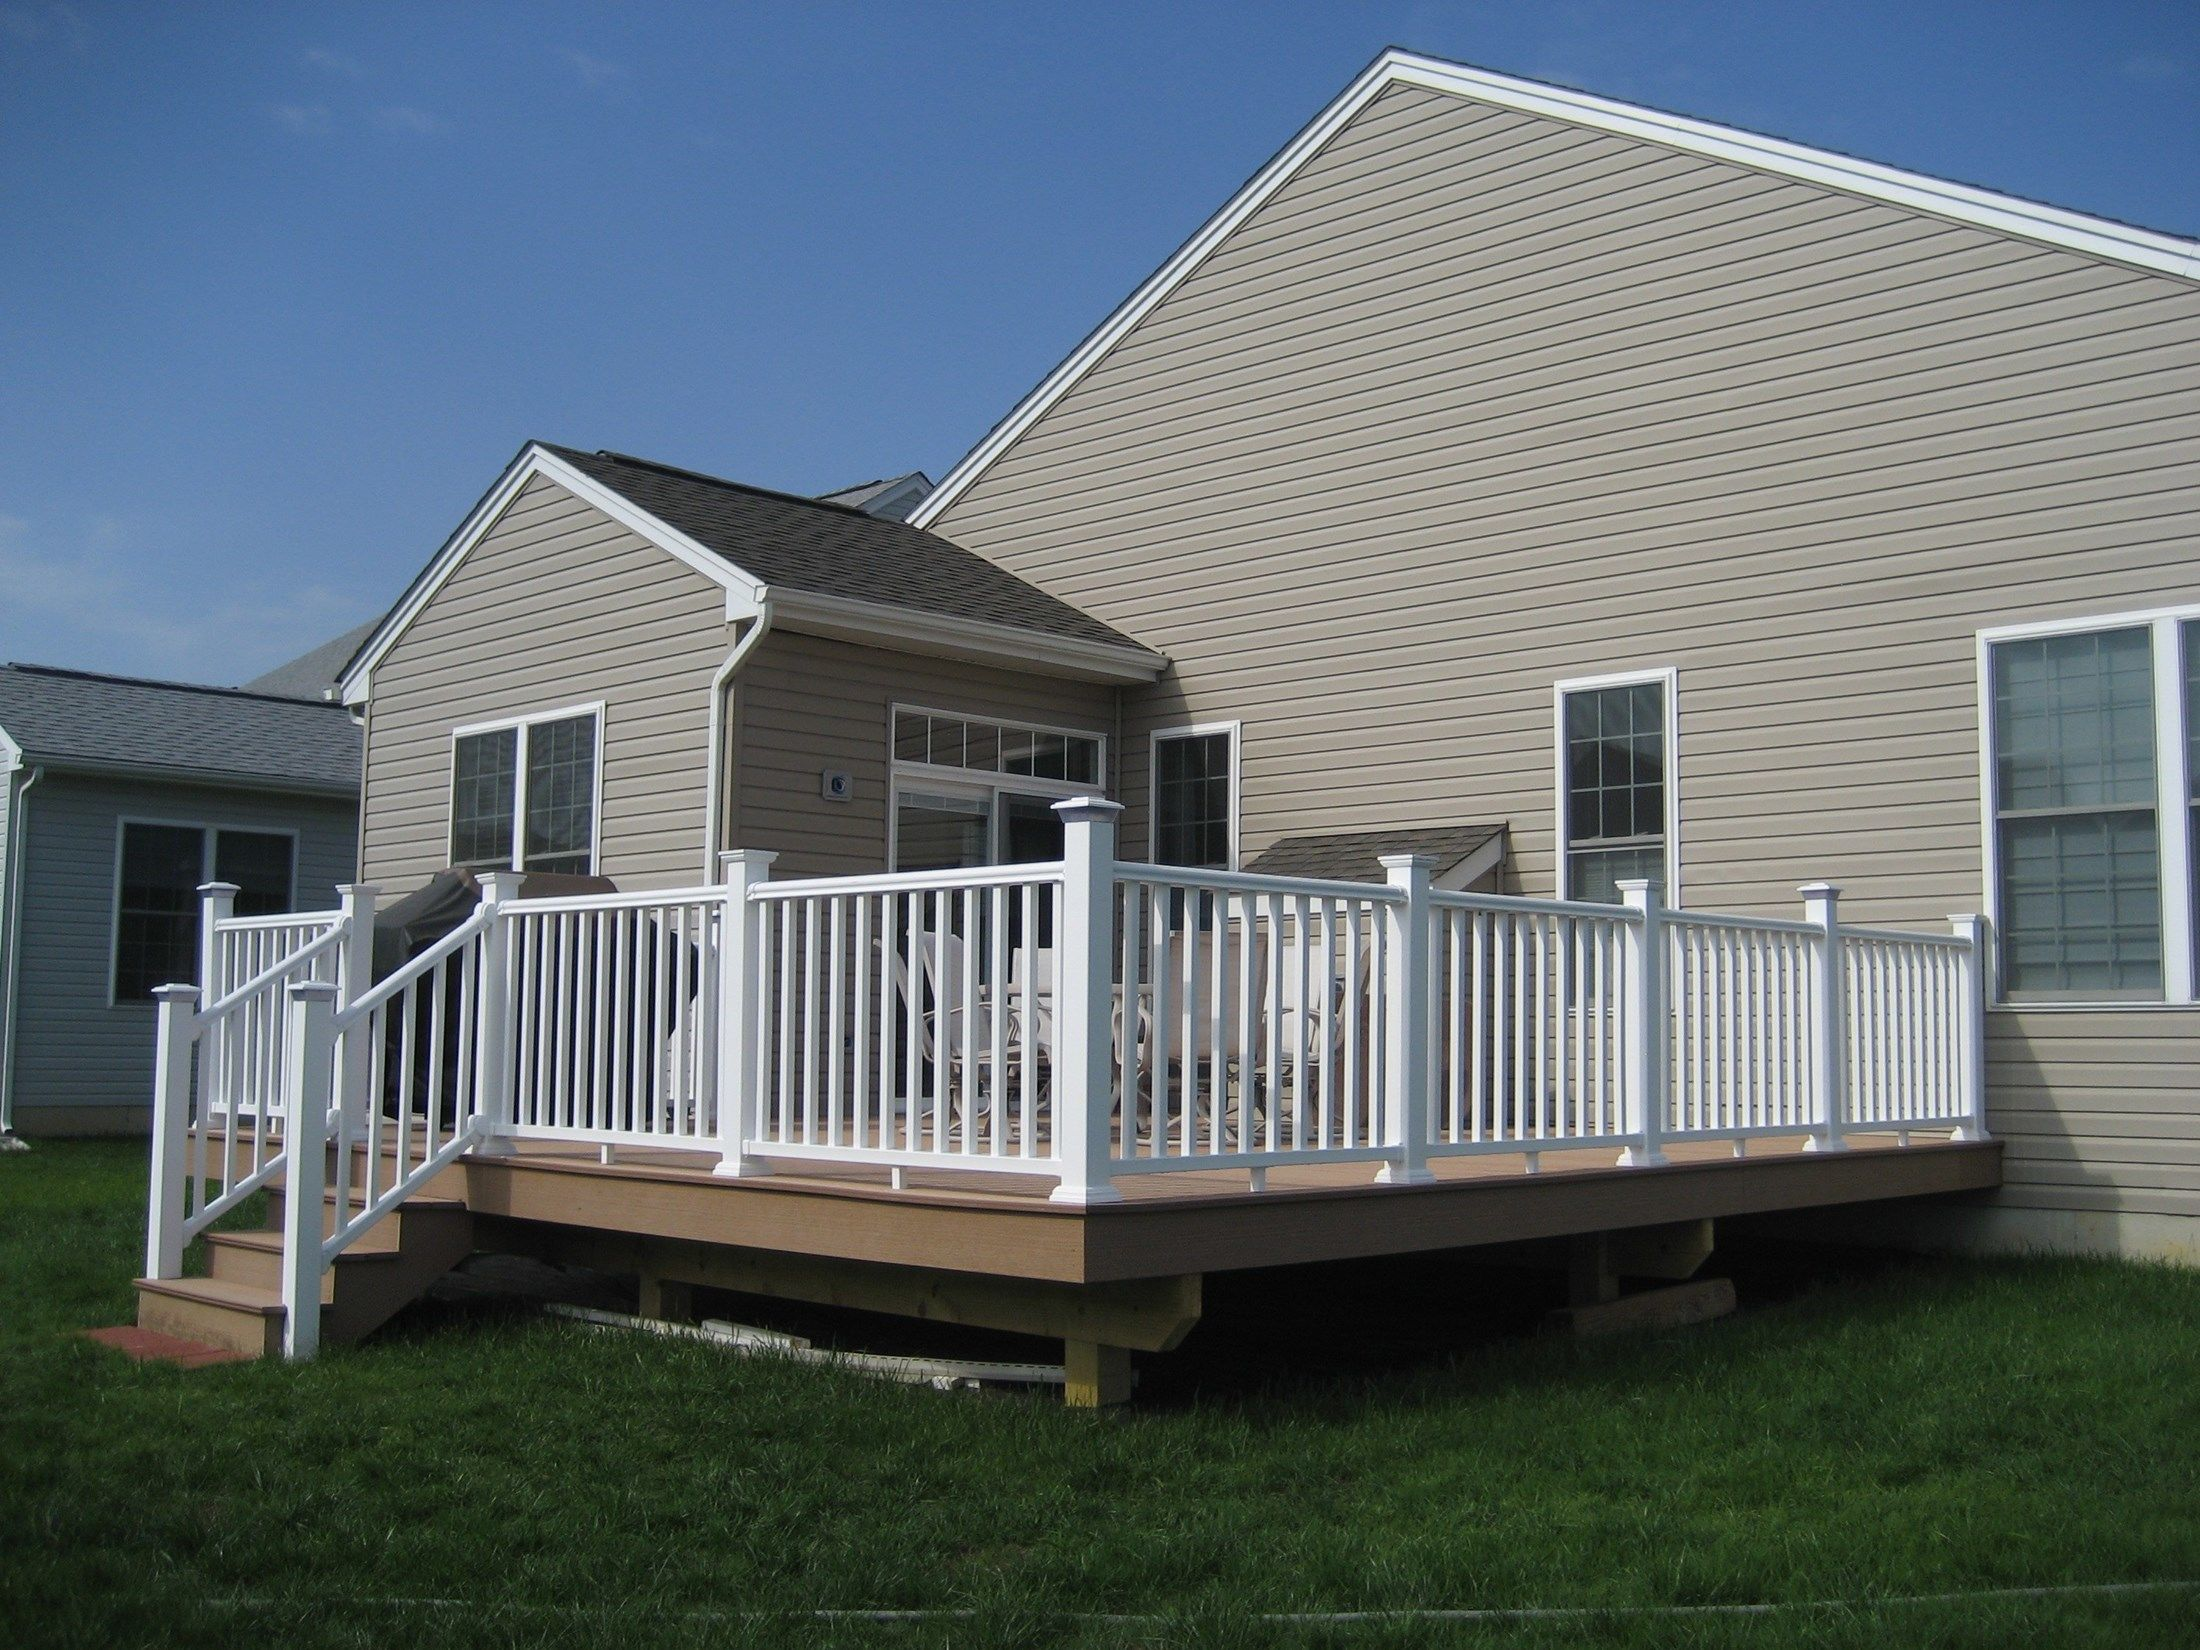 Composite Decks With PVC Vinyl Railing - Picture 6430